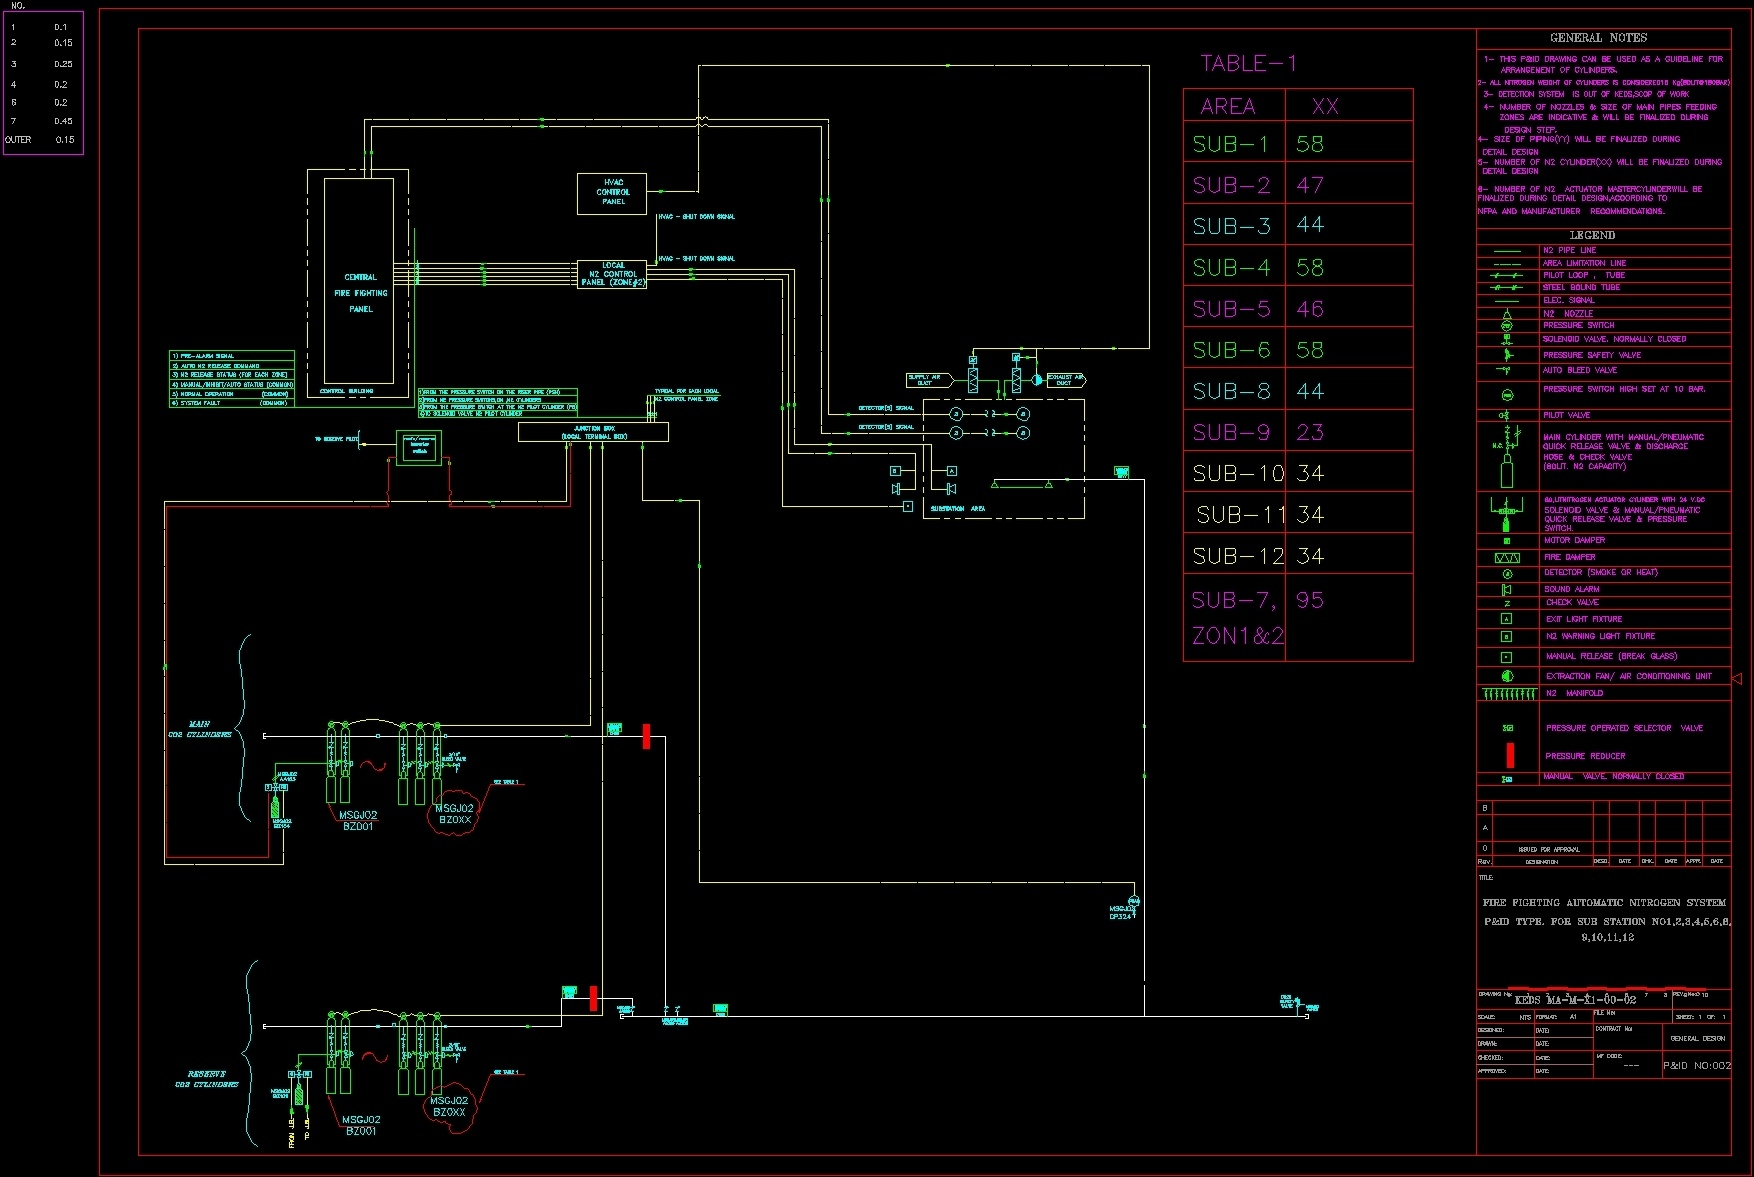 Fire Dwg Block For Autocad Designs Cad Hvac Drawing Download File Type